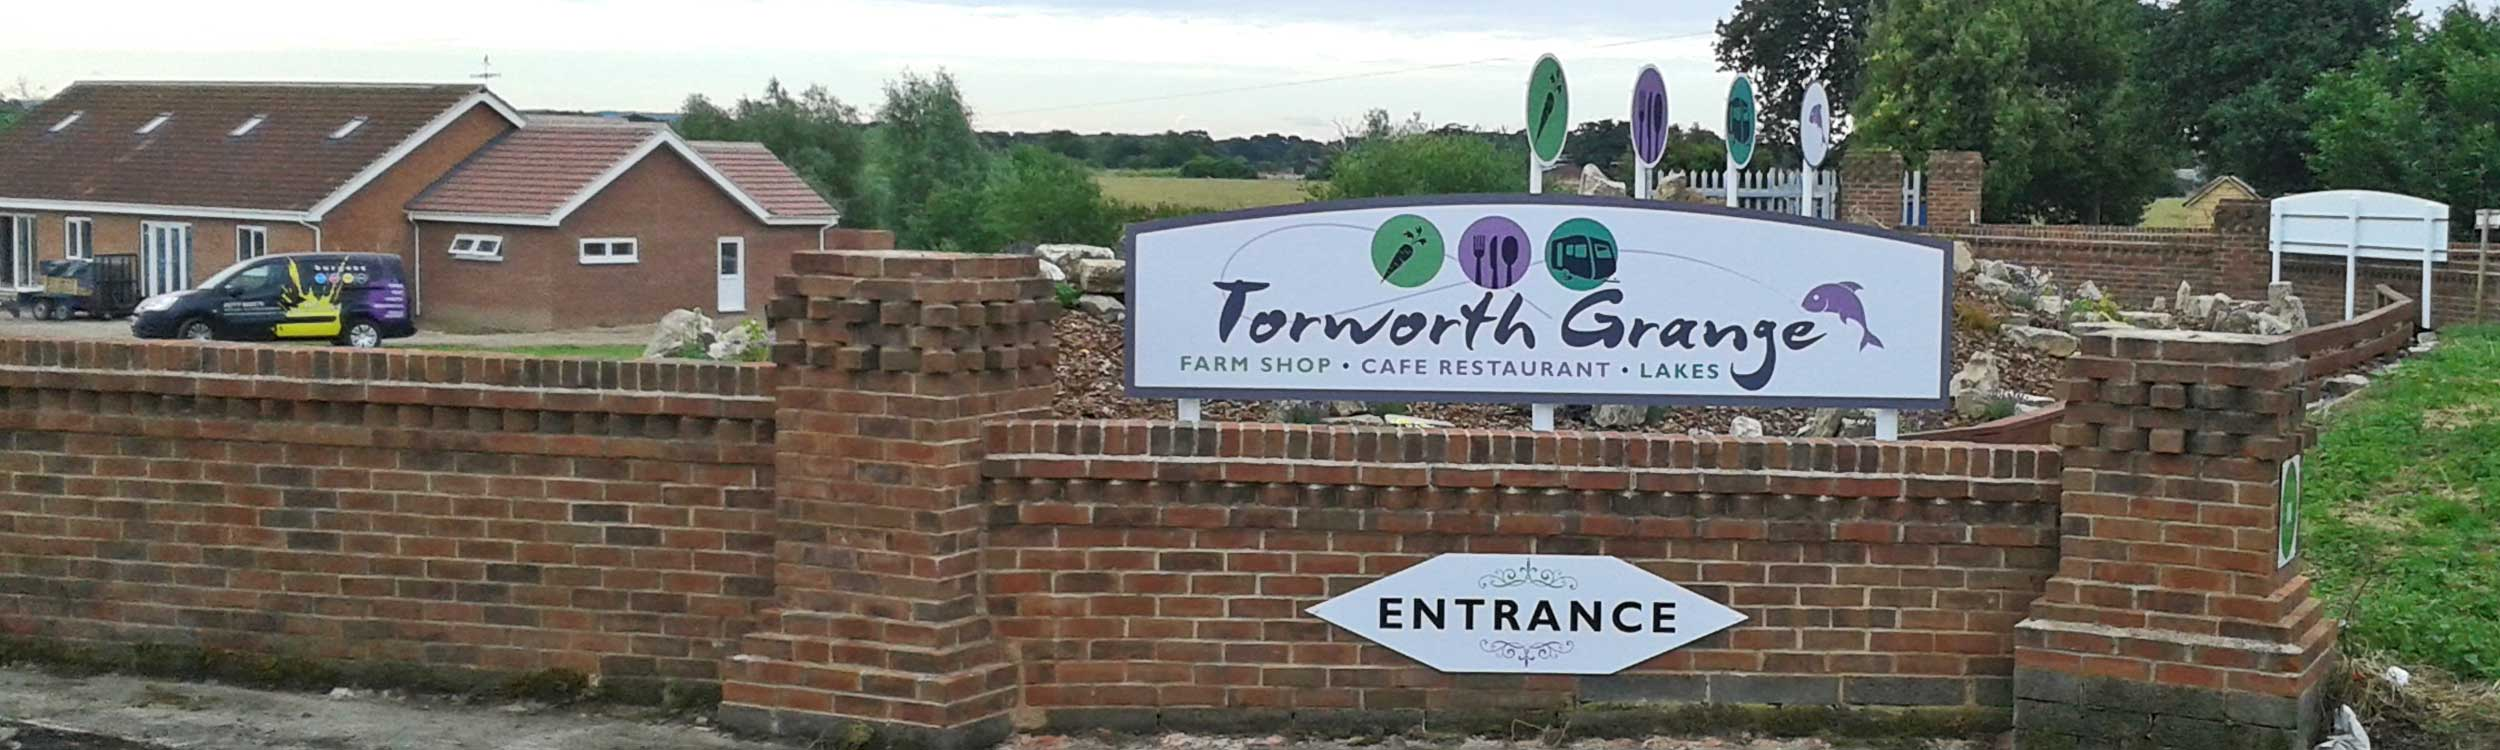 Torworth Grange cafe, restaurant, farm shop, fishing lakes, caravan site, camping rallies, events showground, countryside, rural Nottinghamshire near bawtry, retford, ranskill, blyth, barnby moor, scrooby, harworth